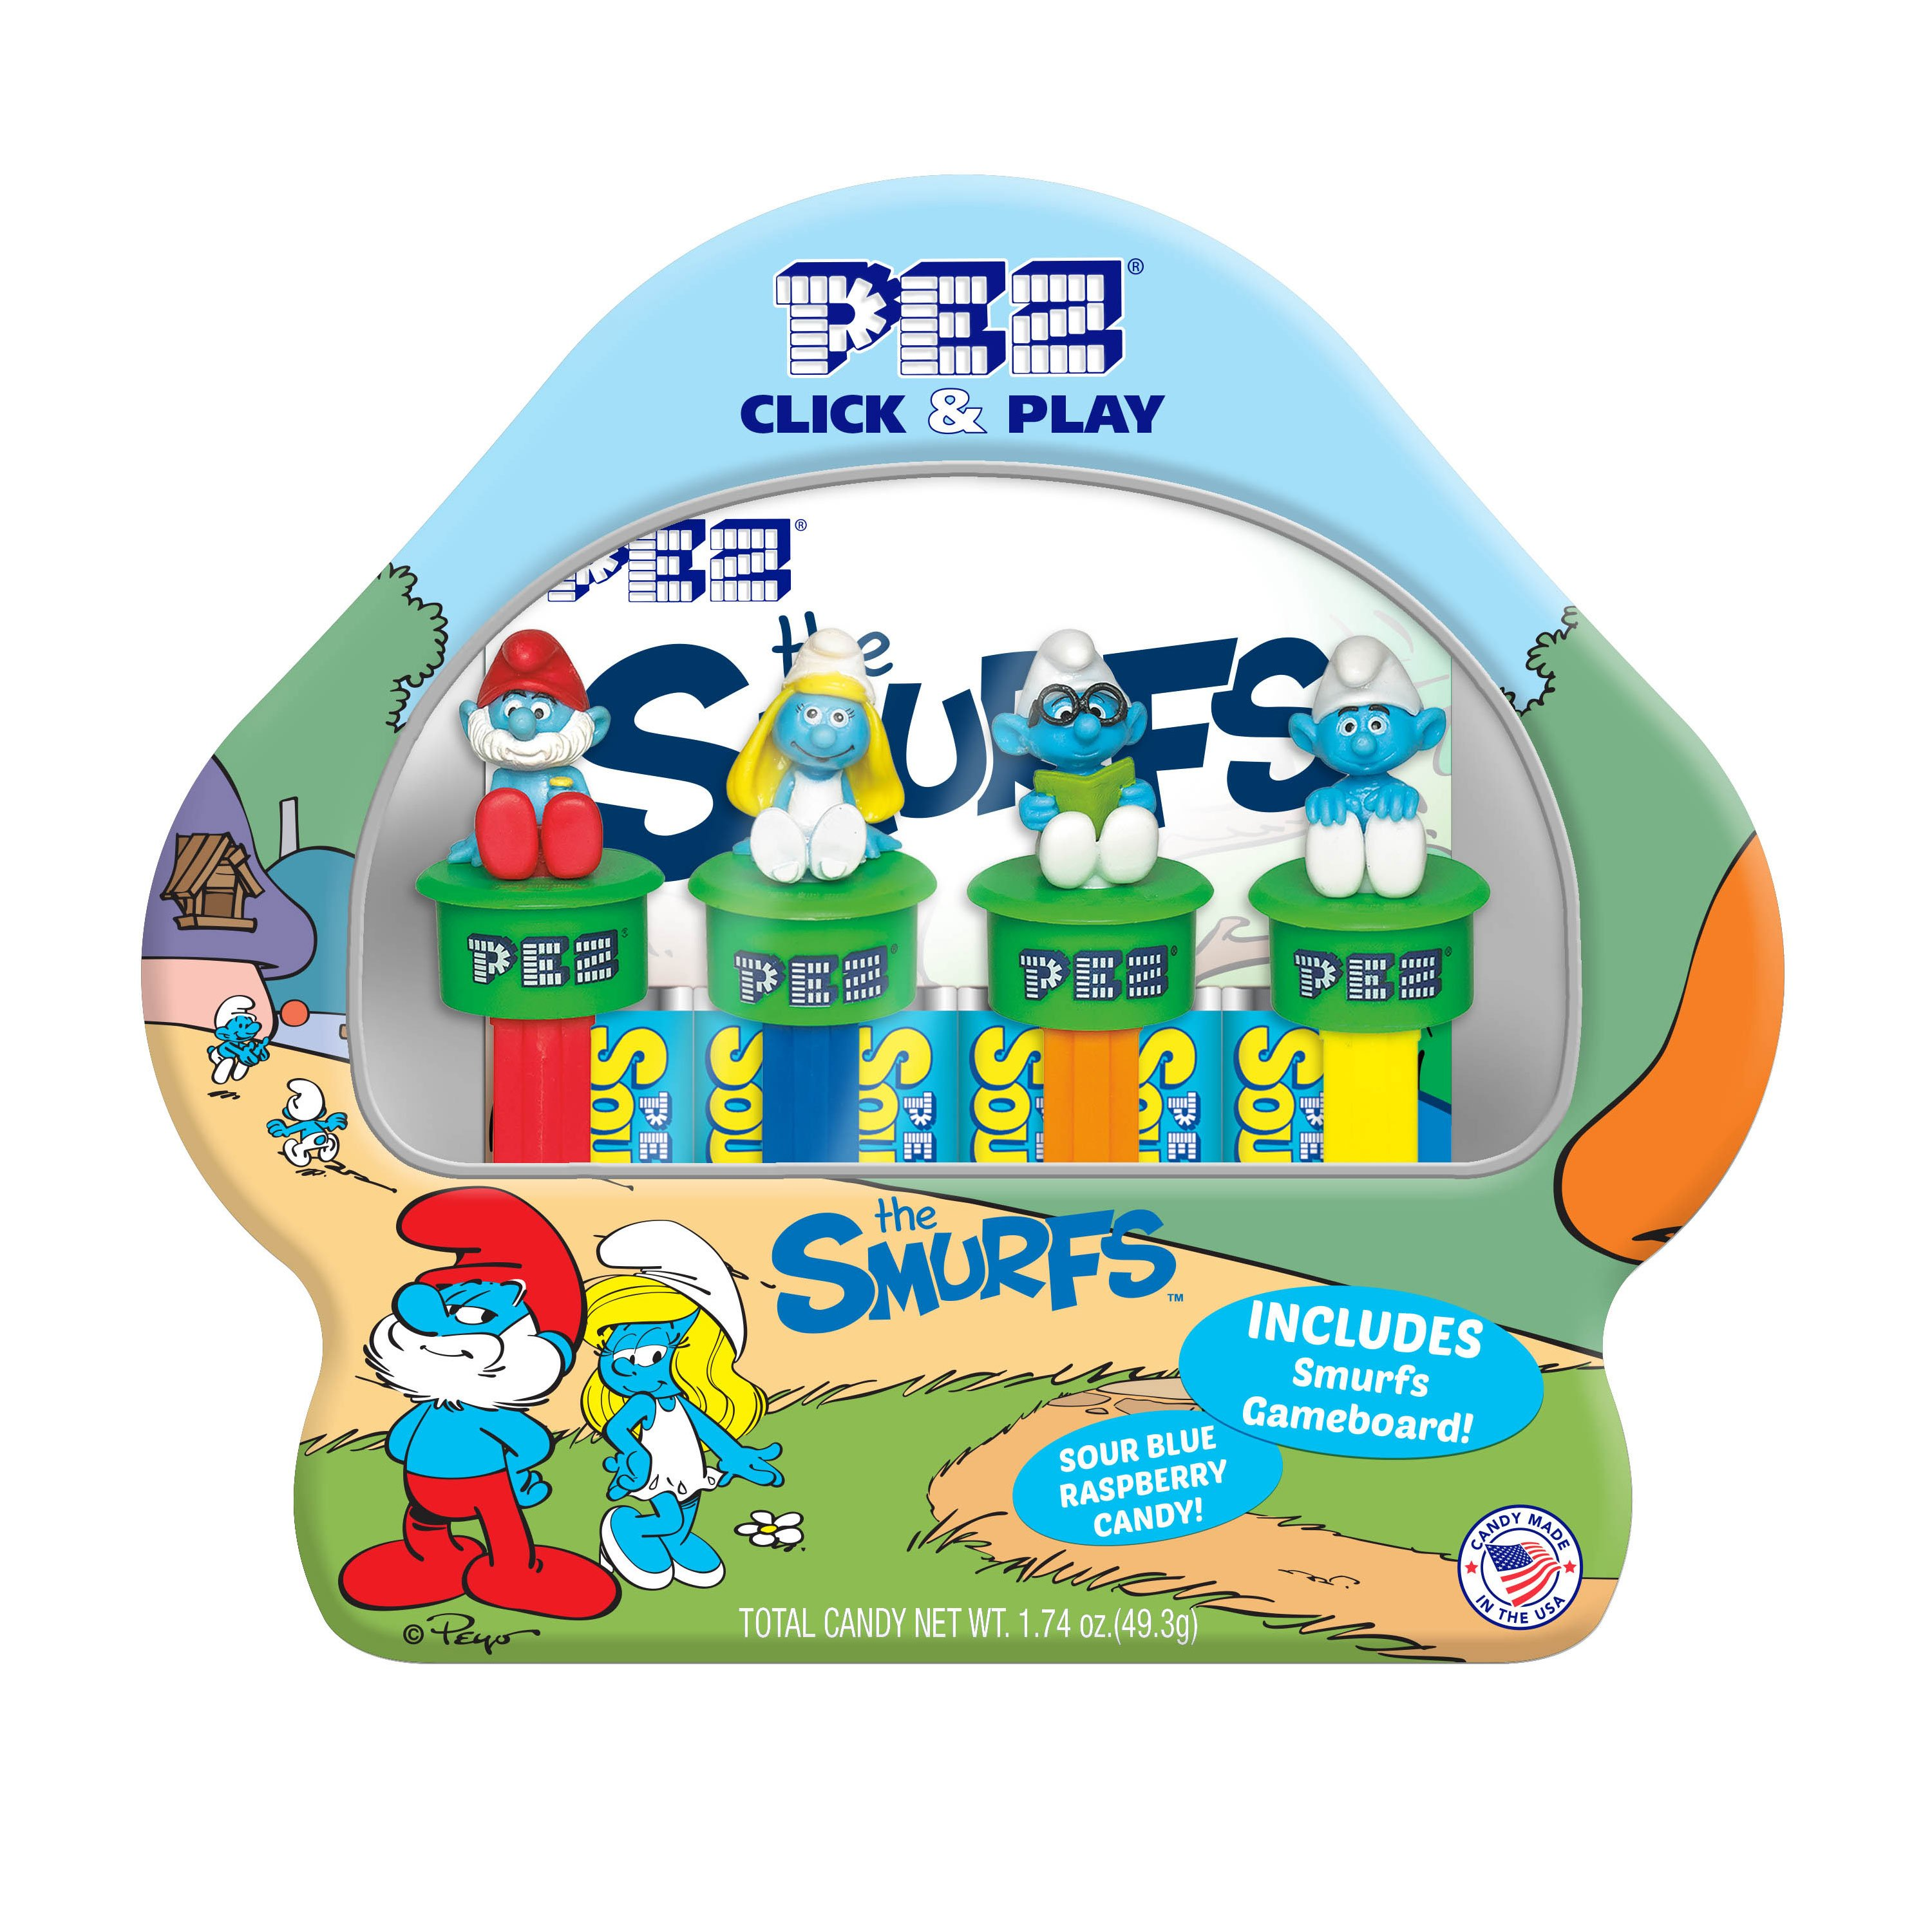 PEZ Candy Smurfs Click & Play Gift Tin with 4 Candy Dispensers + 6 Rolls of Candy